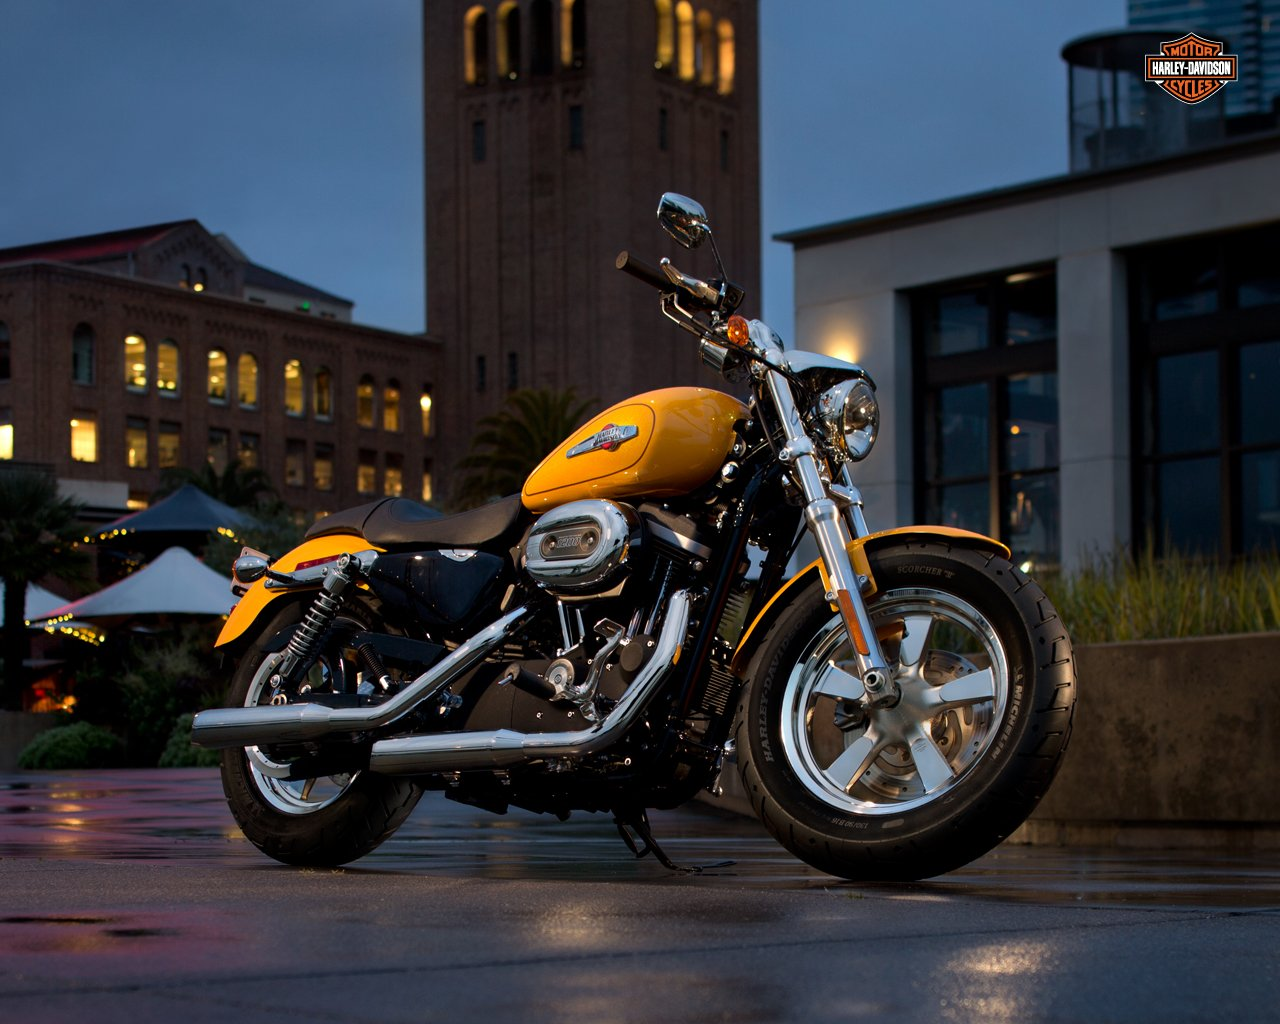 Harley Davidson Sportster Wallpaper   Wallpapers And Pictures 1280x1024